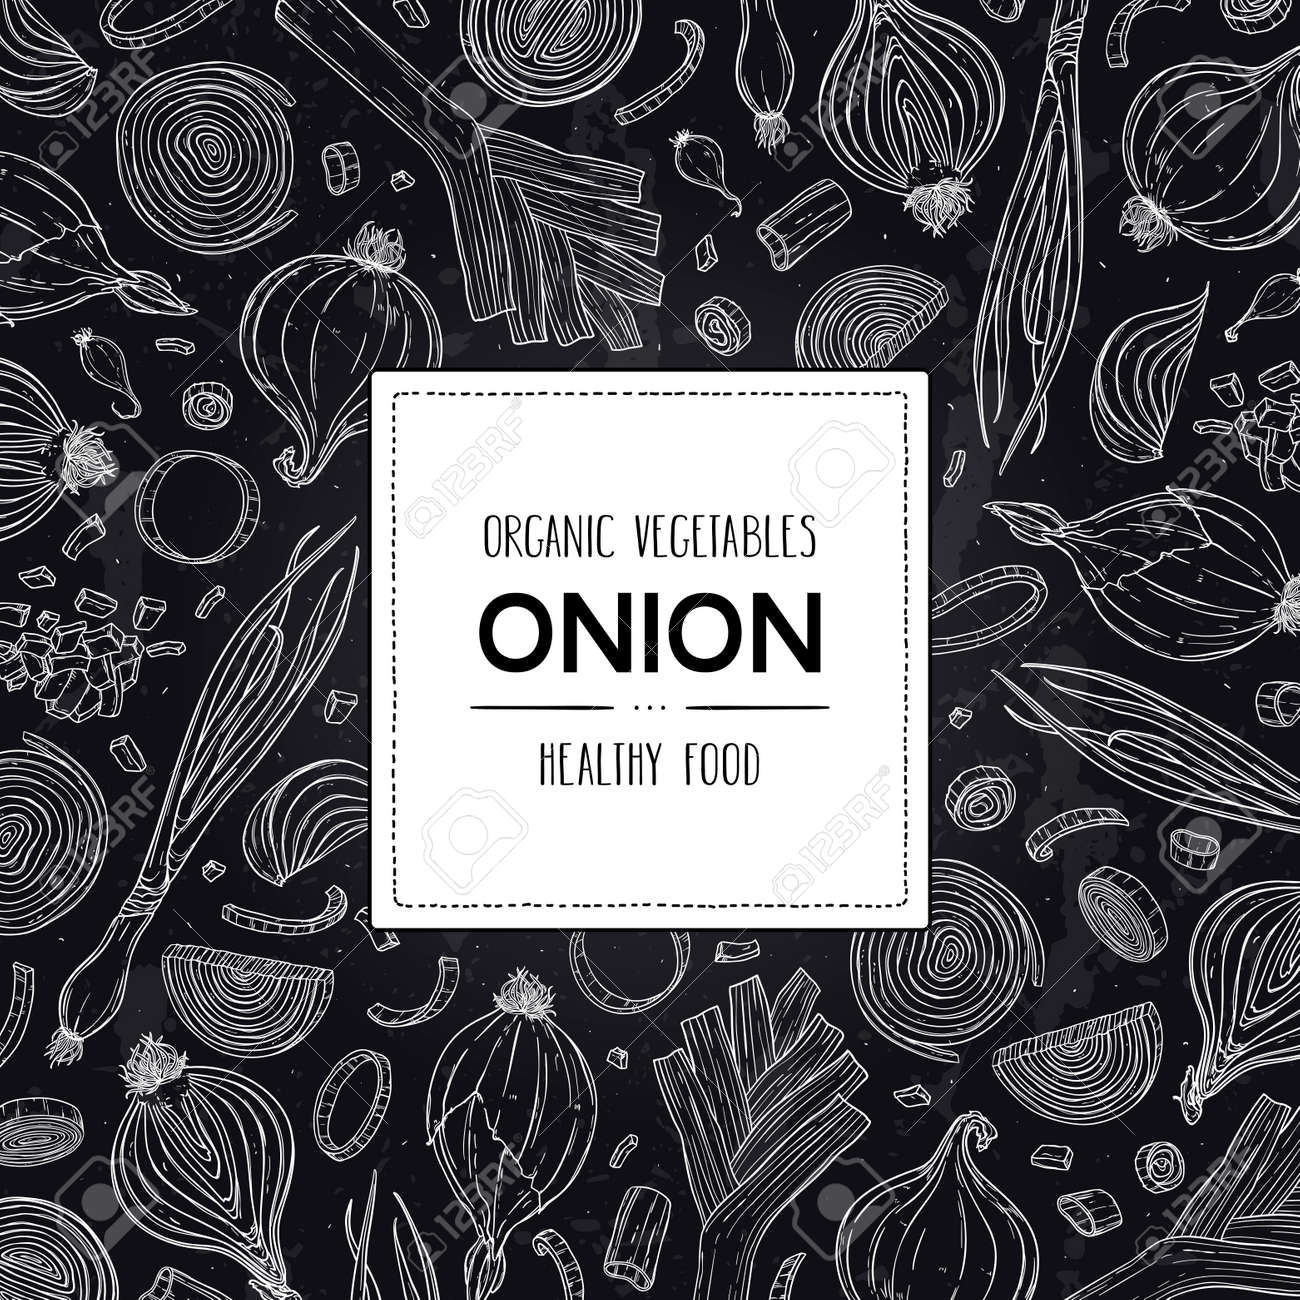 Vector chalkboard style frame with organic onion bulb, slices, halves, pieces, green onion, leek and label. Healthy hand drawn doodle sketch illustration. - 168597346